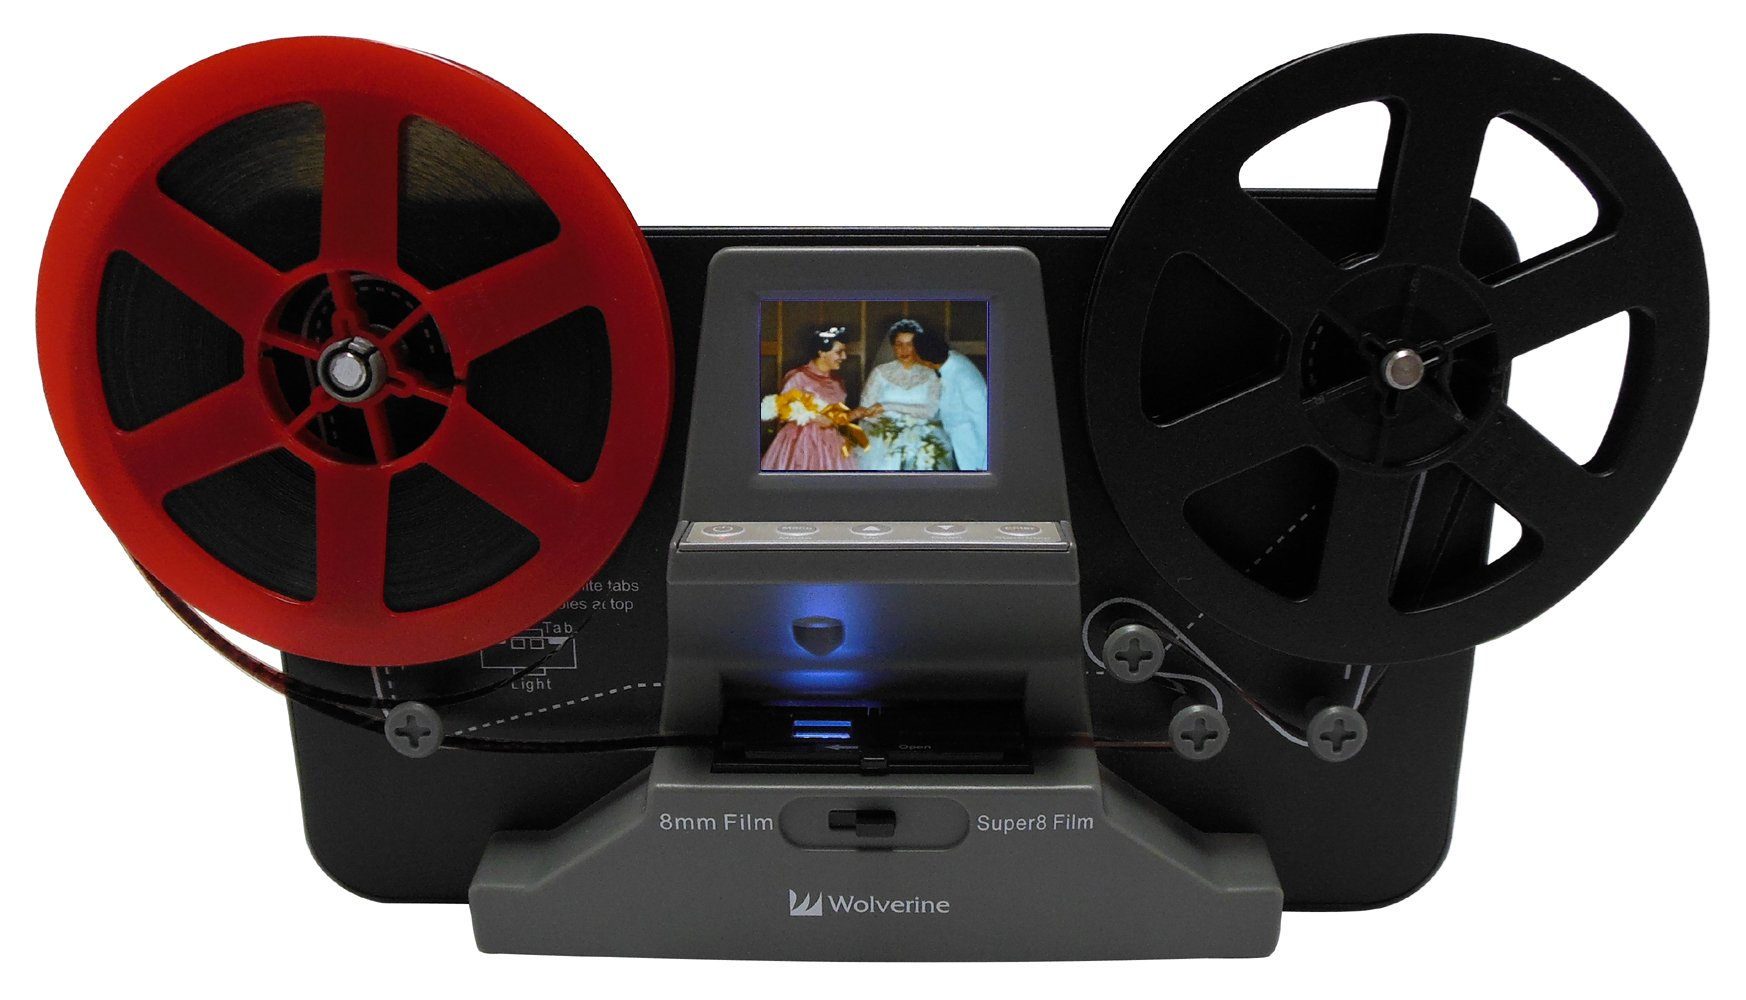 Wolverine 8mm and Super8 Reels Movie Digitizer with 2.4'' LCD, Black (Film2Digital MovieMaker) by Wolverine